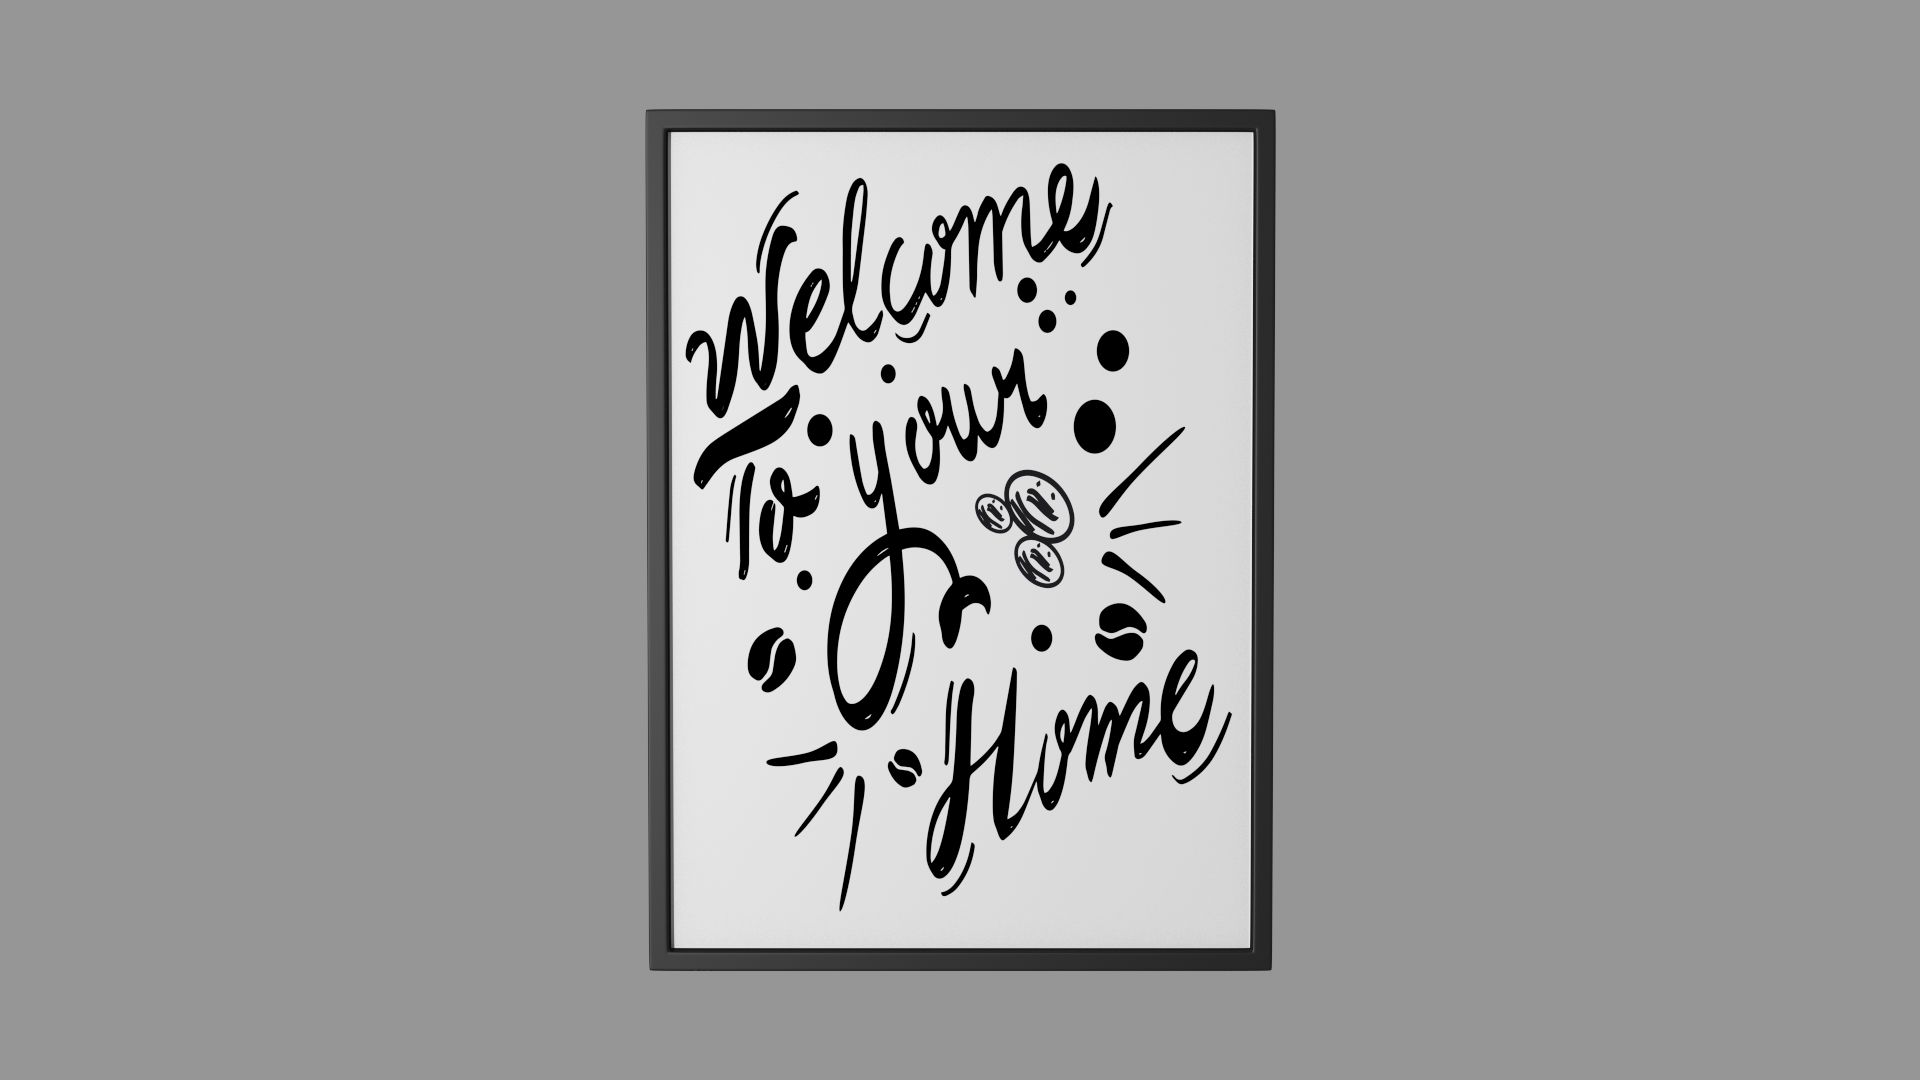 Free Handwritten Wall Graphic Welcome to your Home | FrogModel